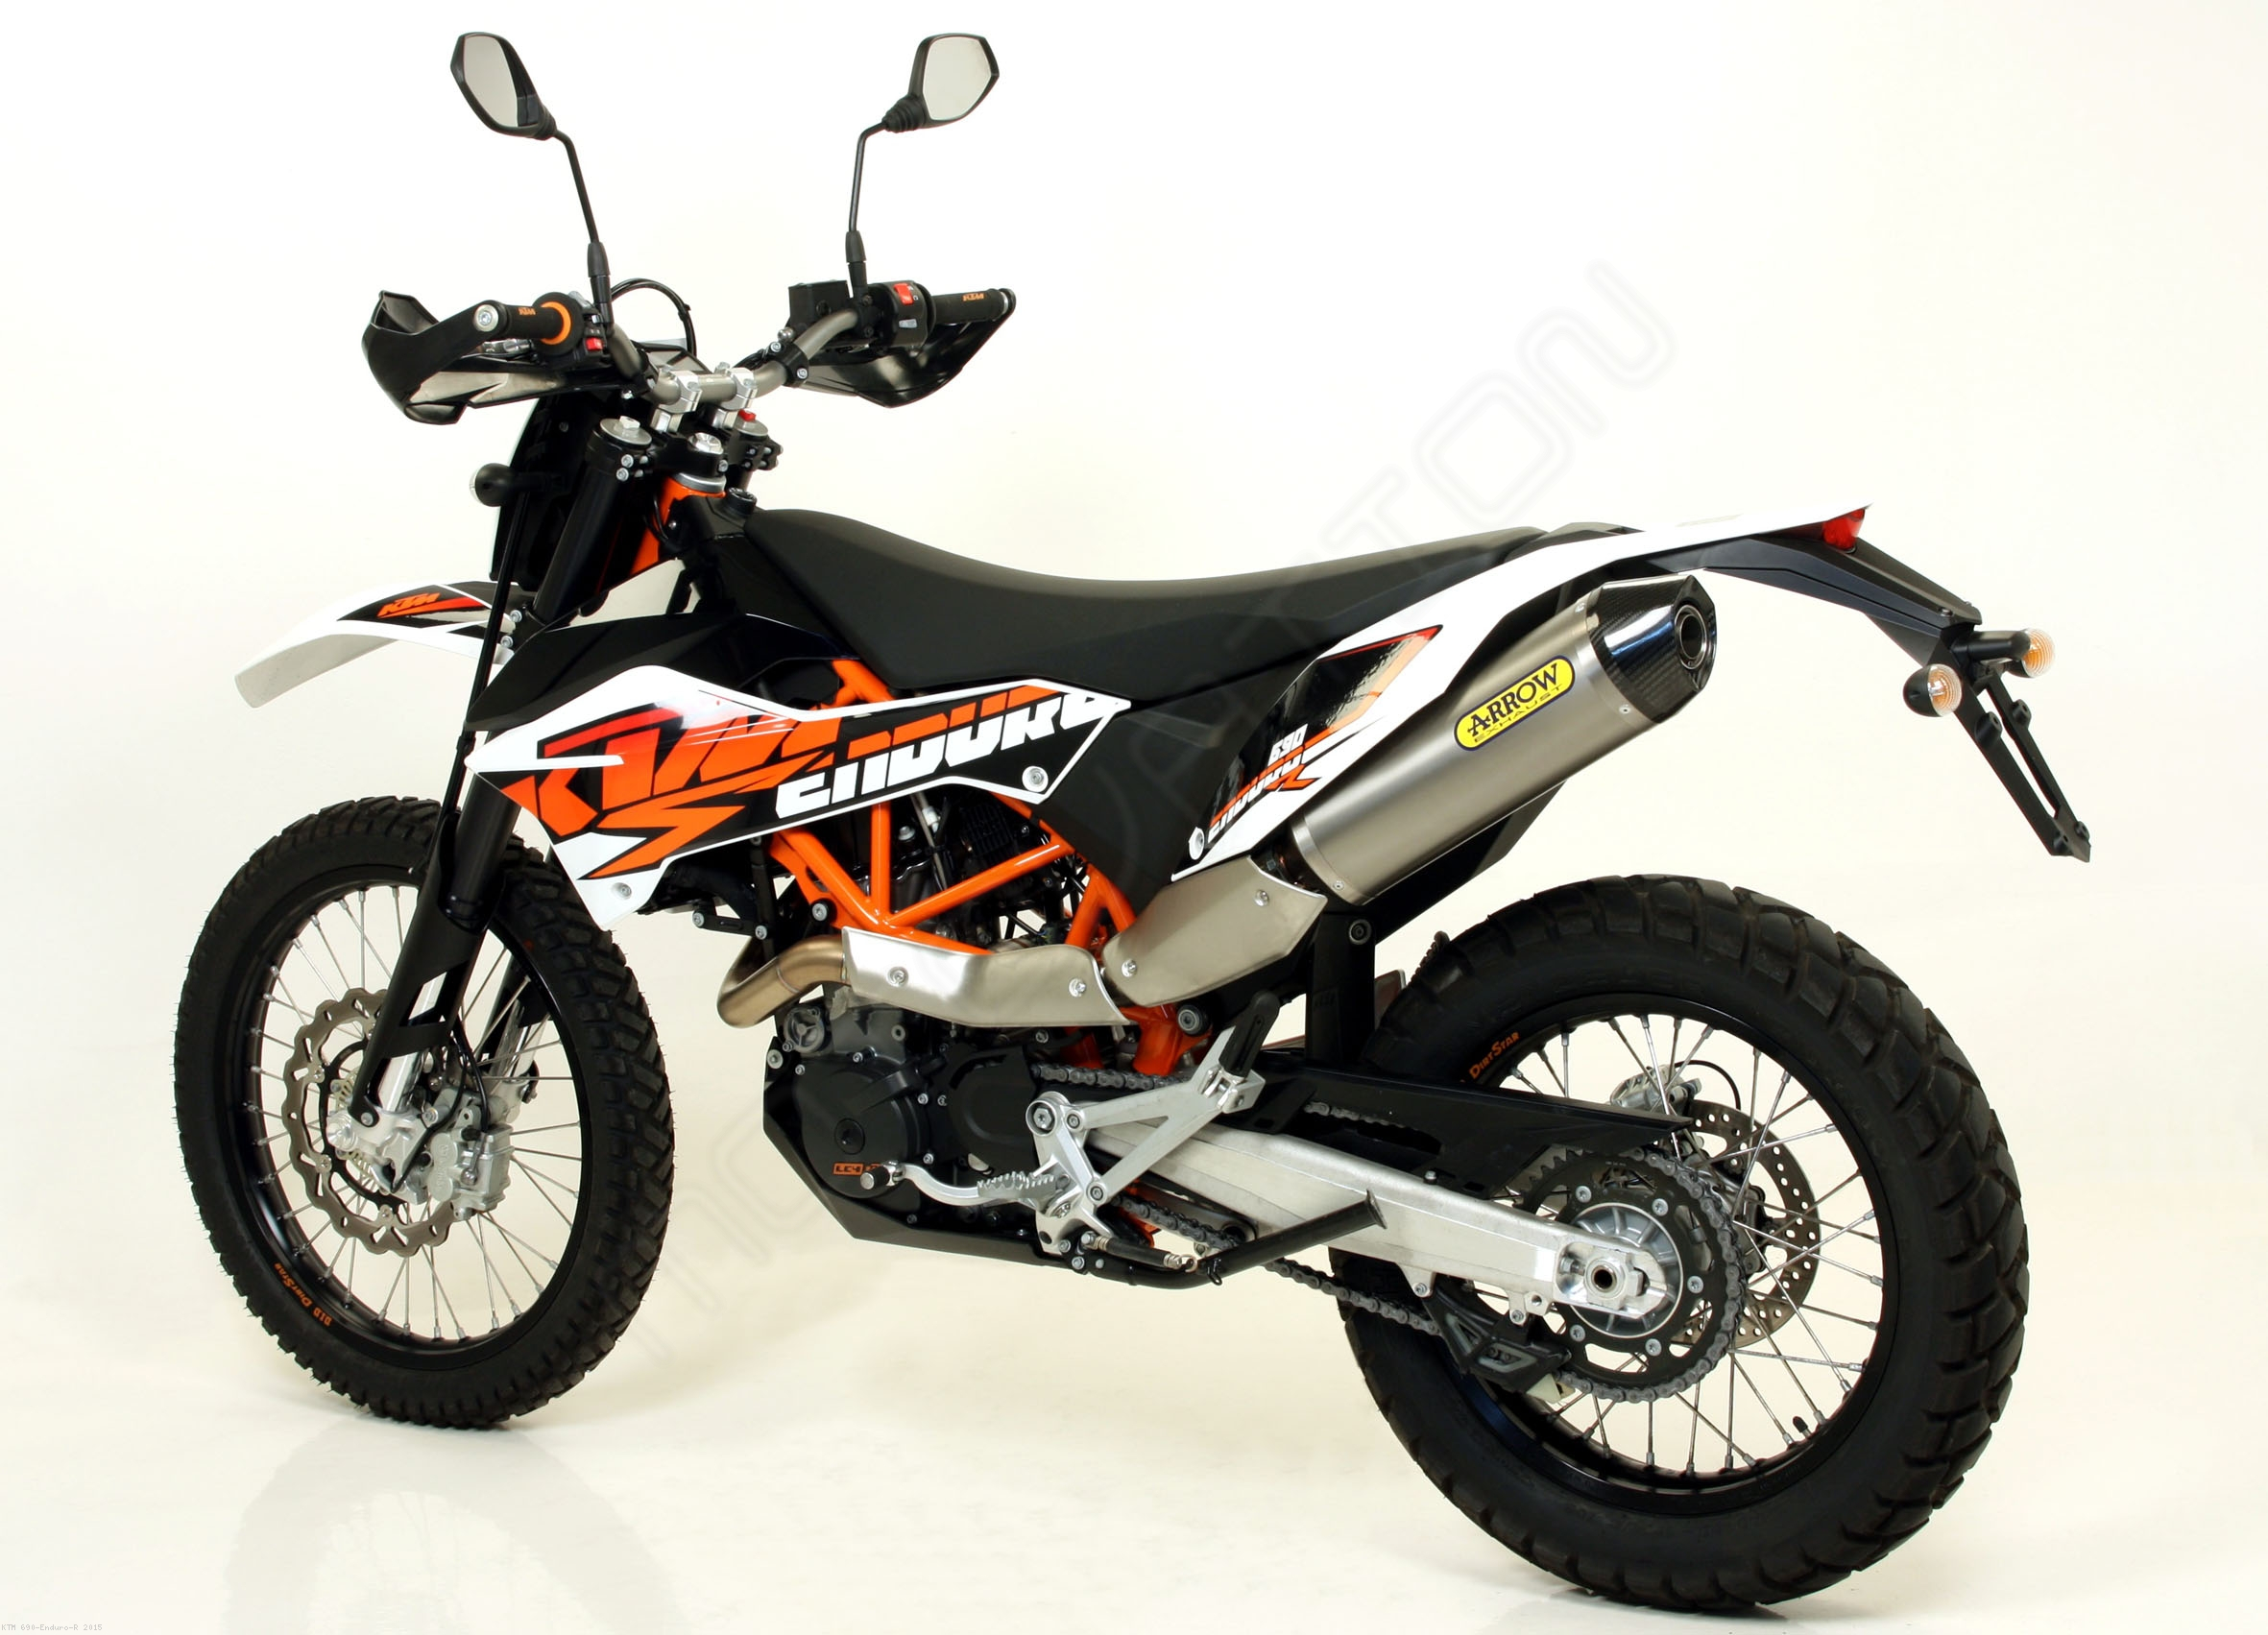 race tech exhaust by arrow ktm 690 enduro r 2015. Black Bedroom Furniture Sets. Home Design Ideas